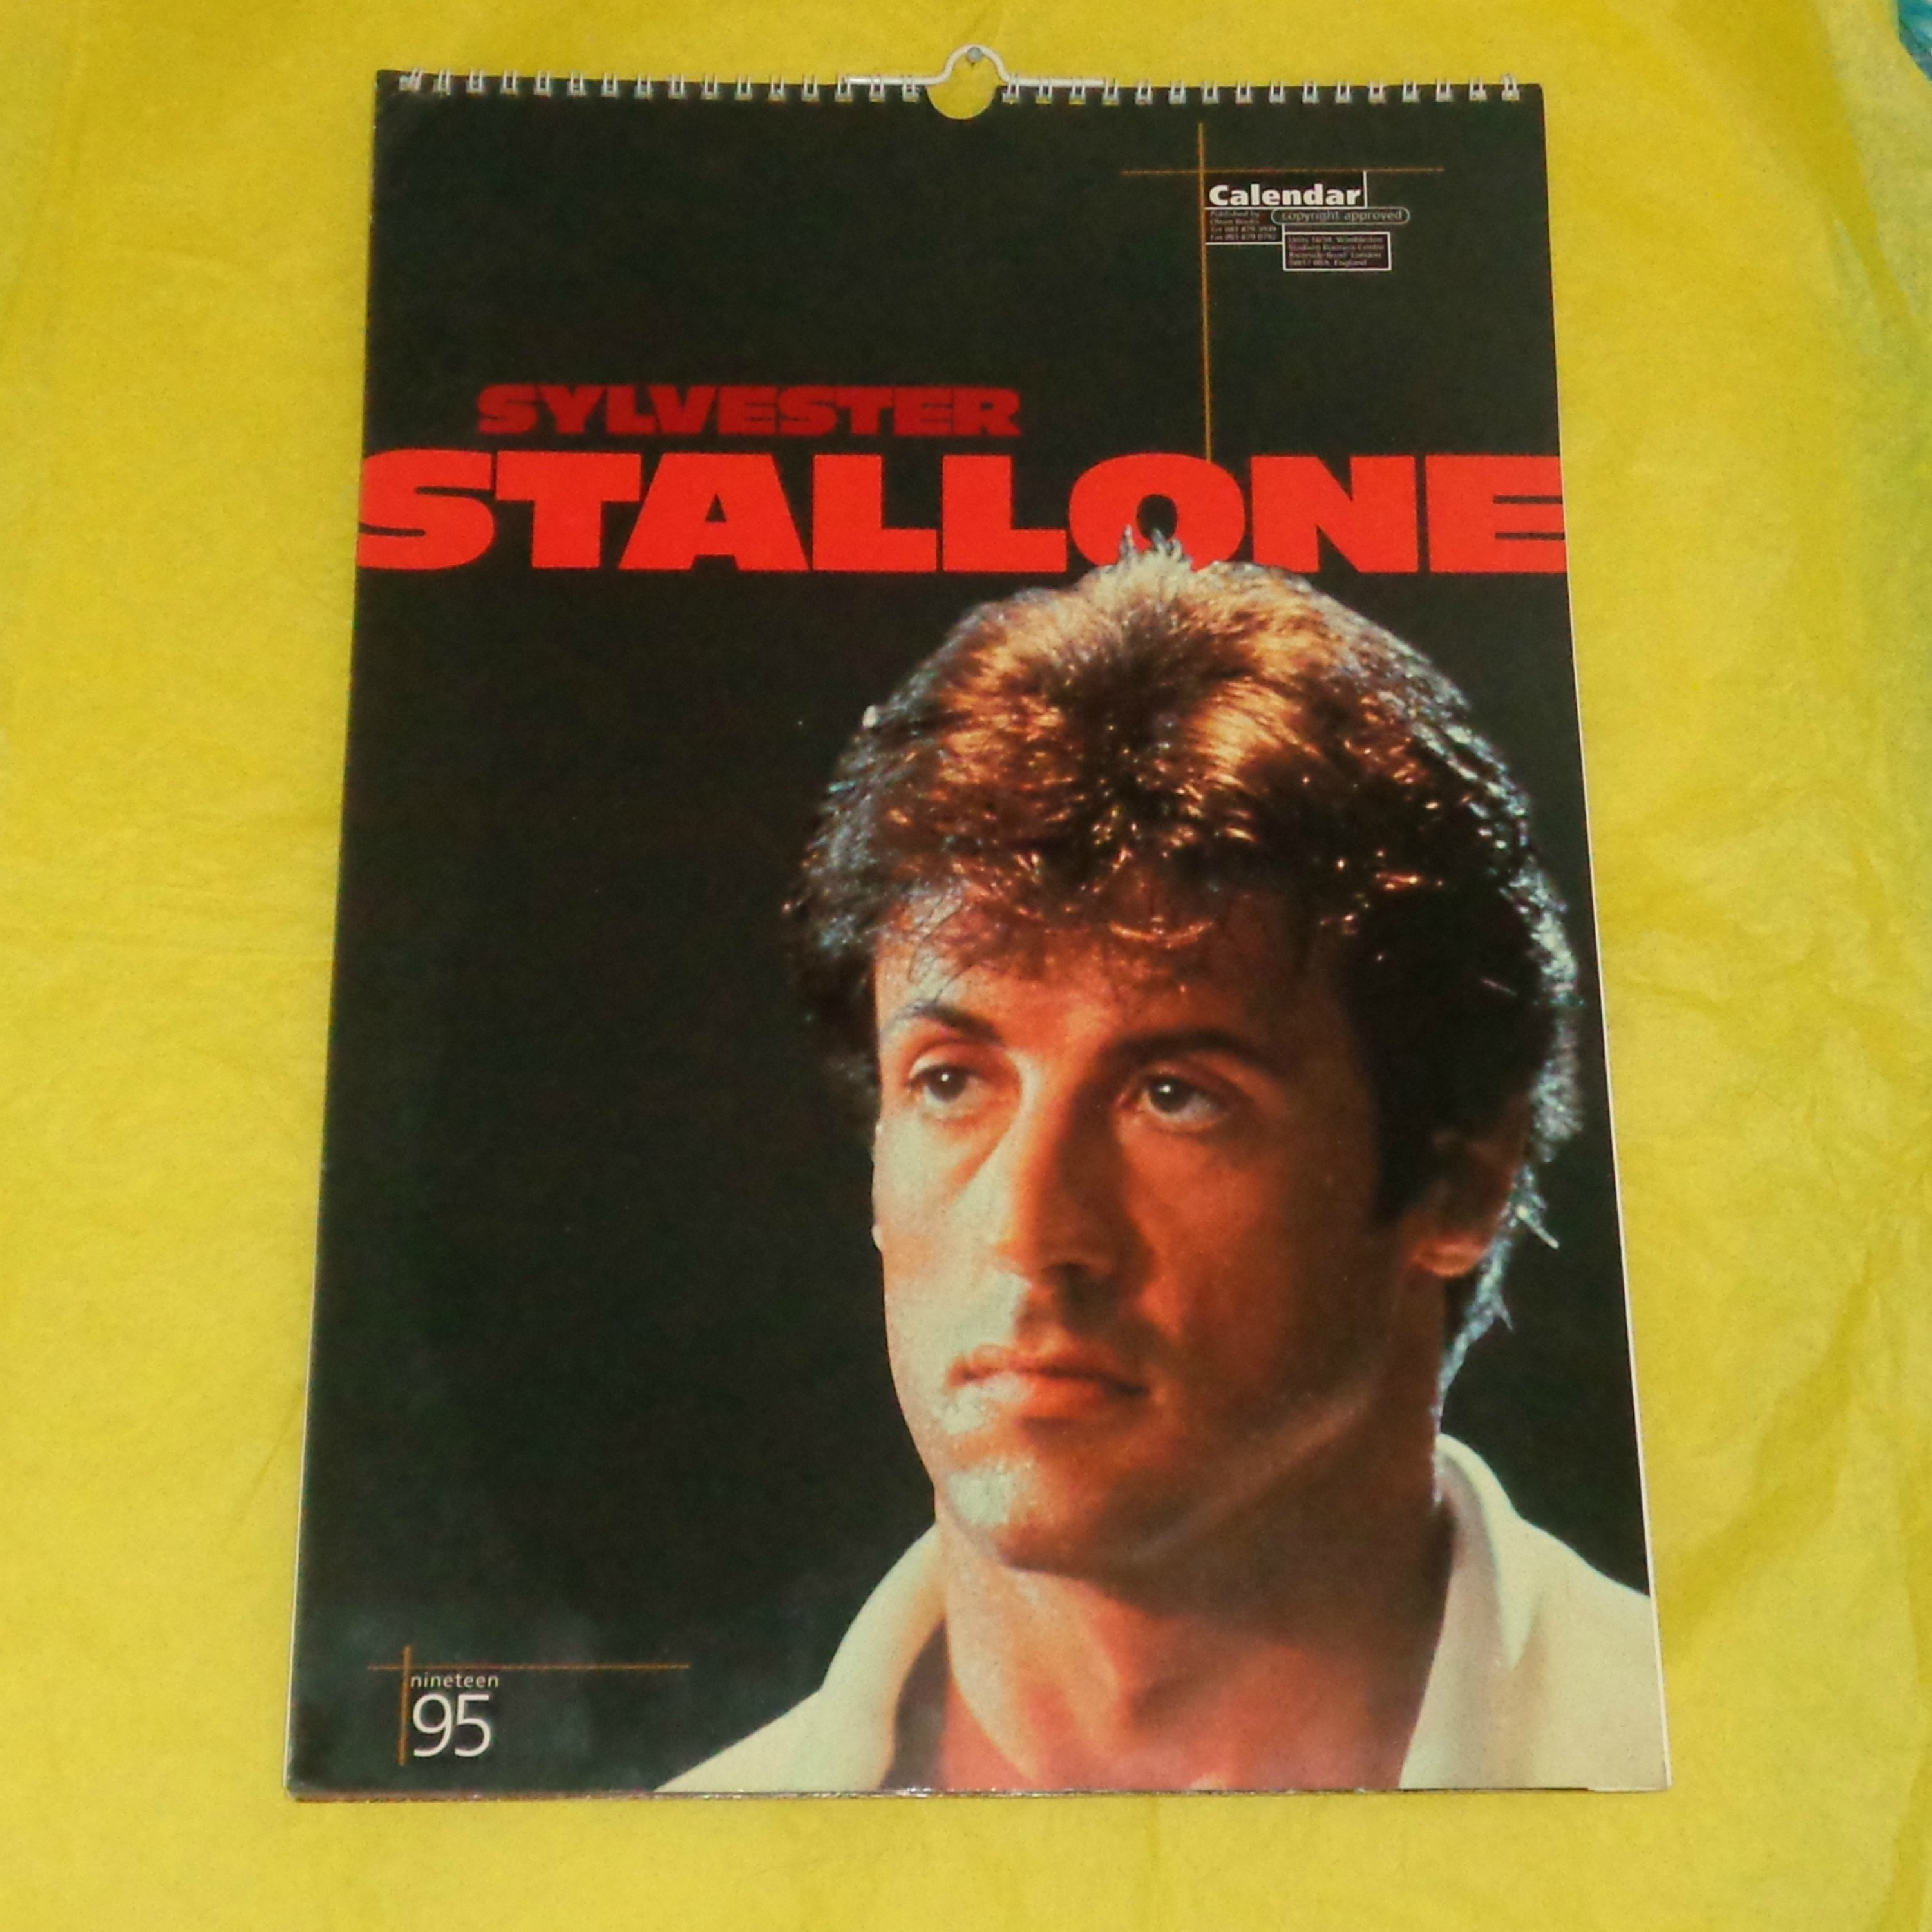 Pierce Brosnan 2000 Oliver Books Calendar Film Memorabilia Full Page Pics Movie Star Vintage Collectable James Bond 007 Full Page Pictures